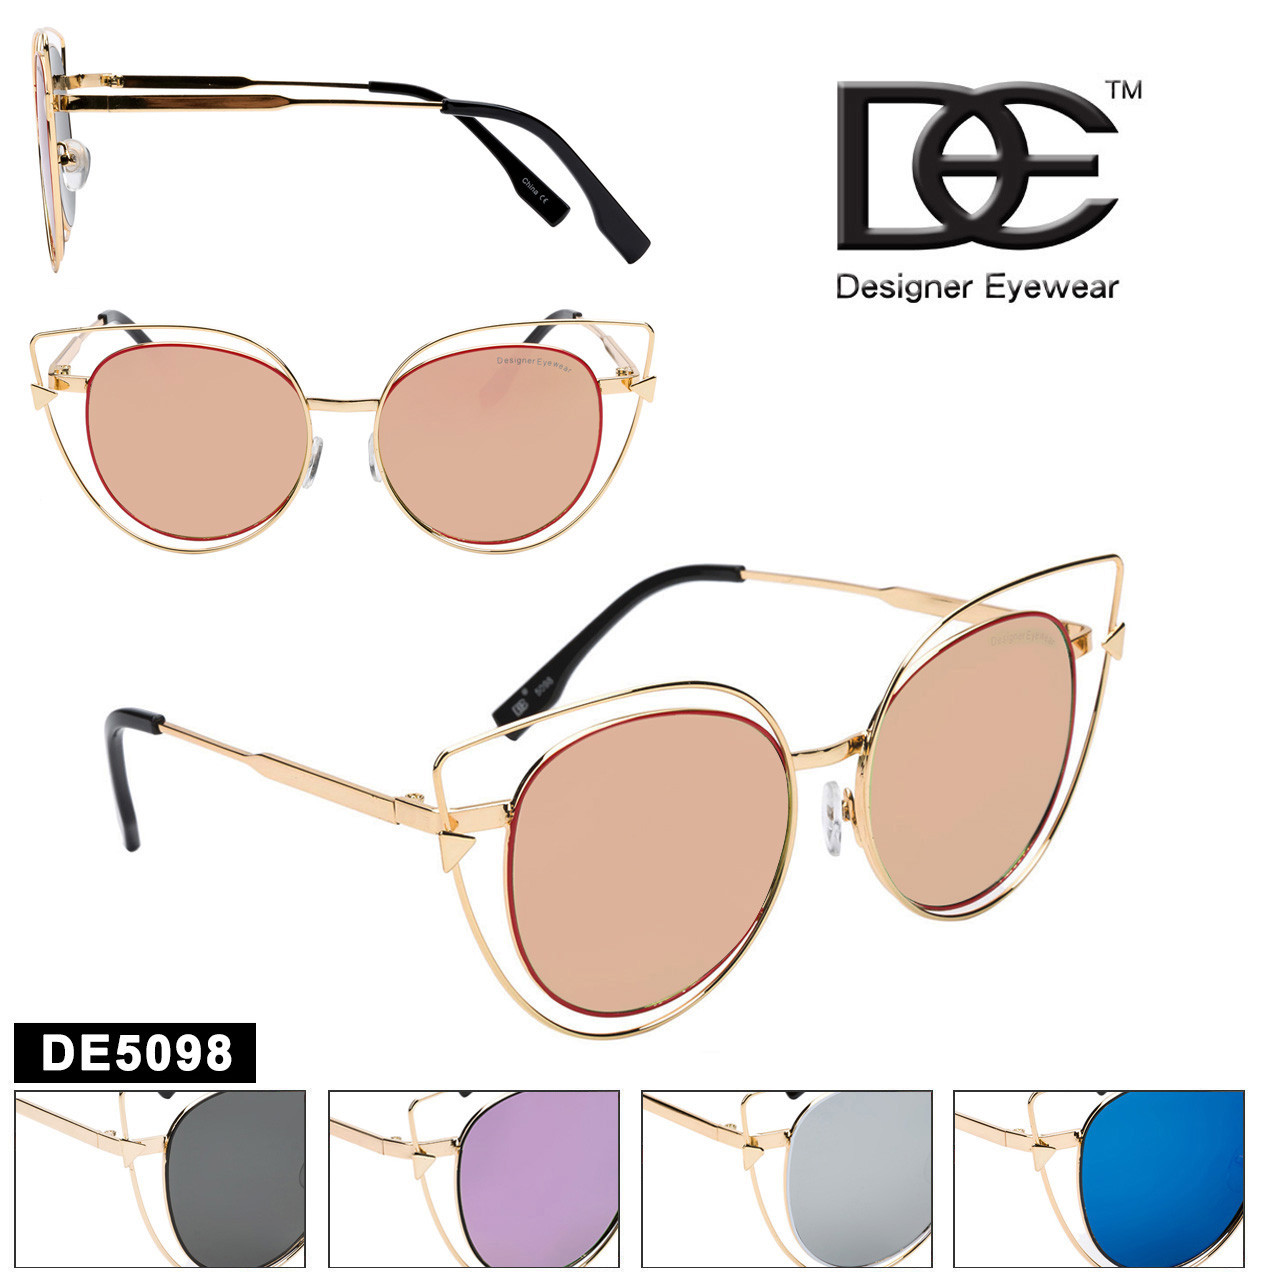 Cat Eye Sunglasses by DE™ Designer Eyewear - Style #DE5098